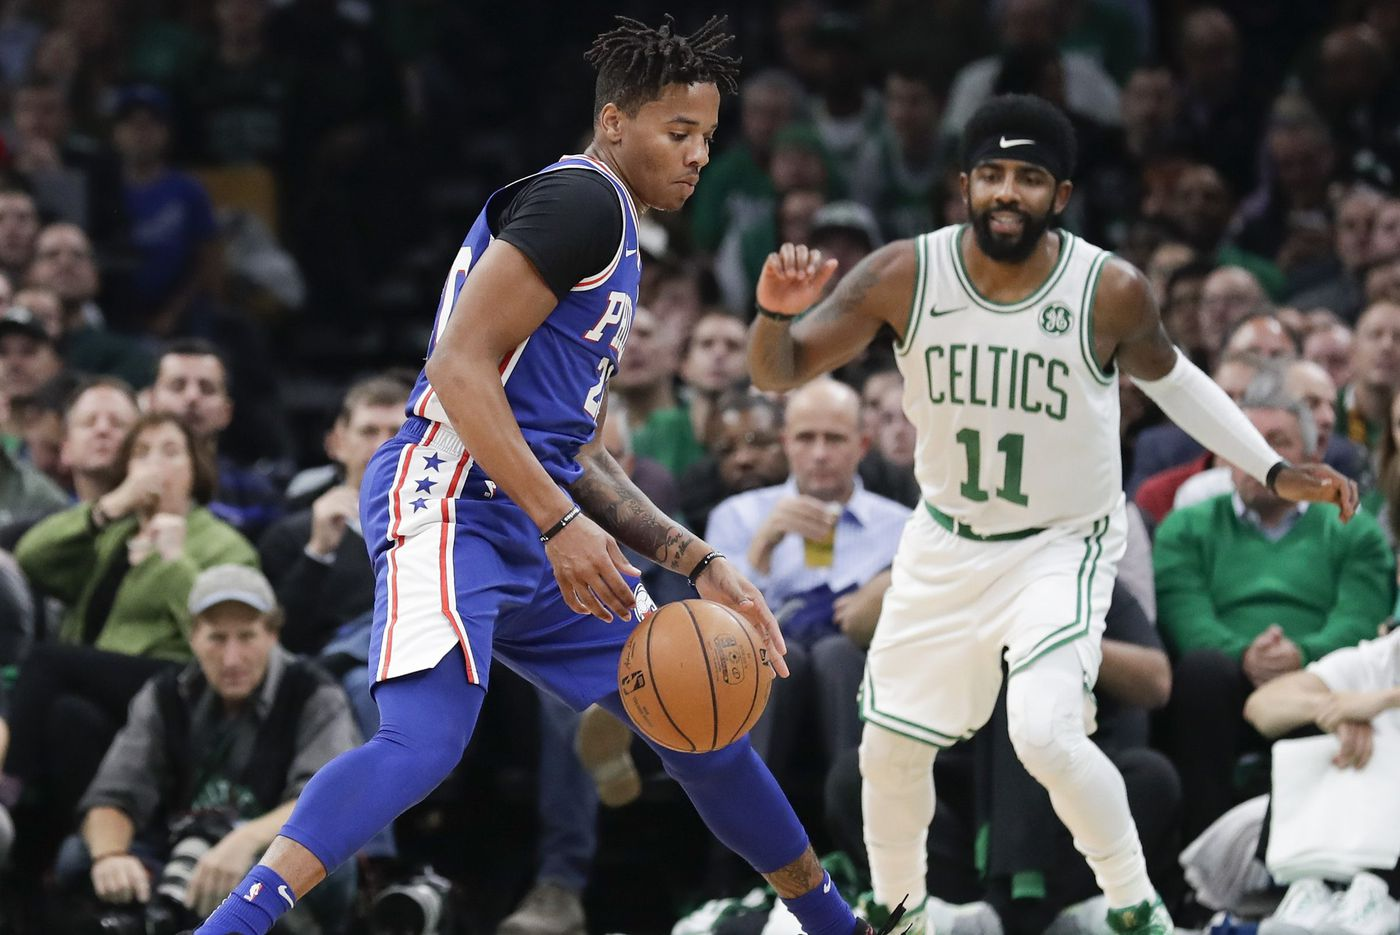 Markelle Fultz's first start reveals little about where he fits with Sixers | David Murphy